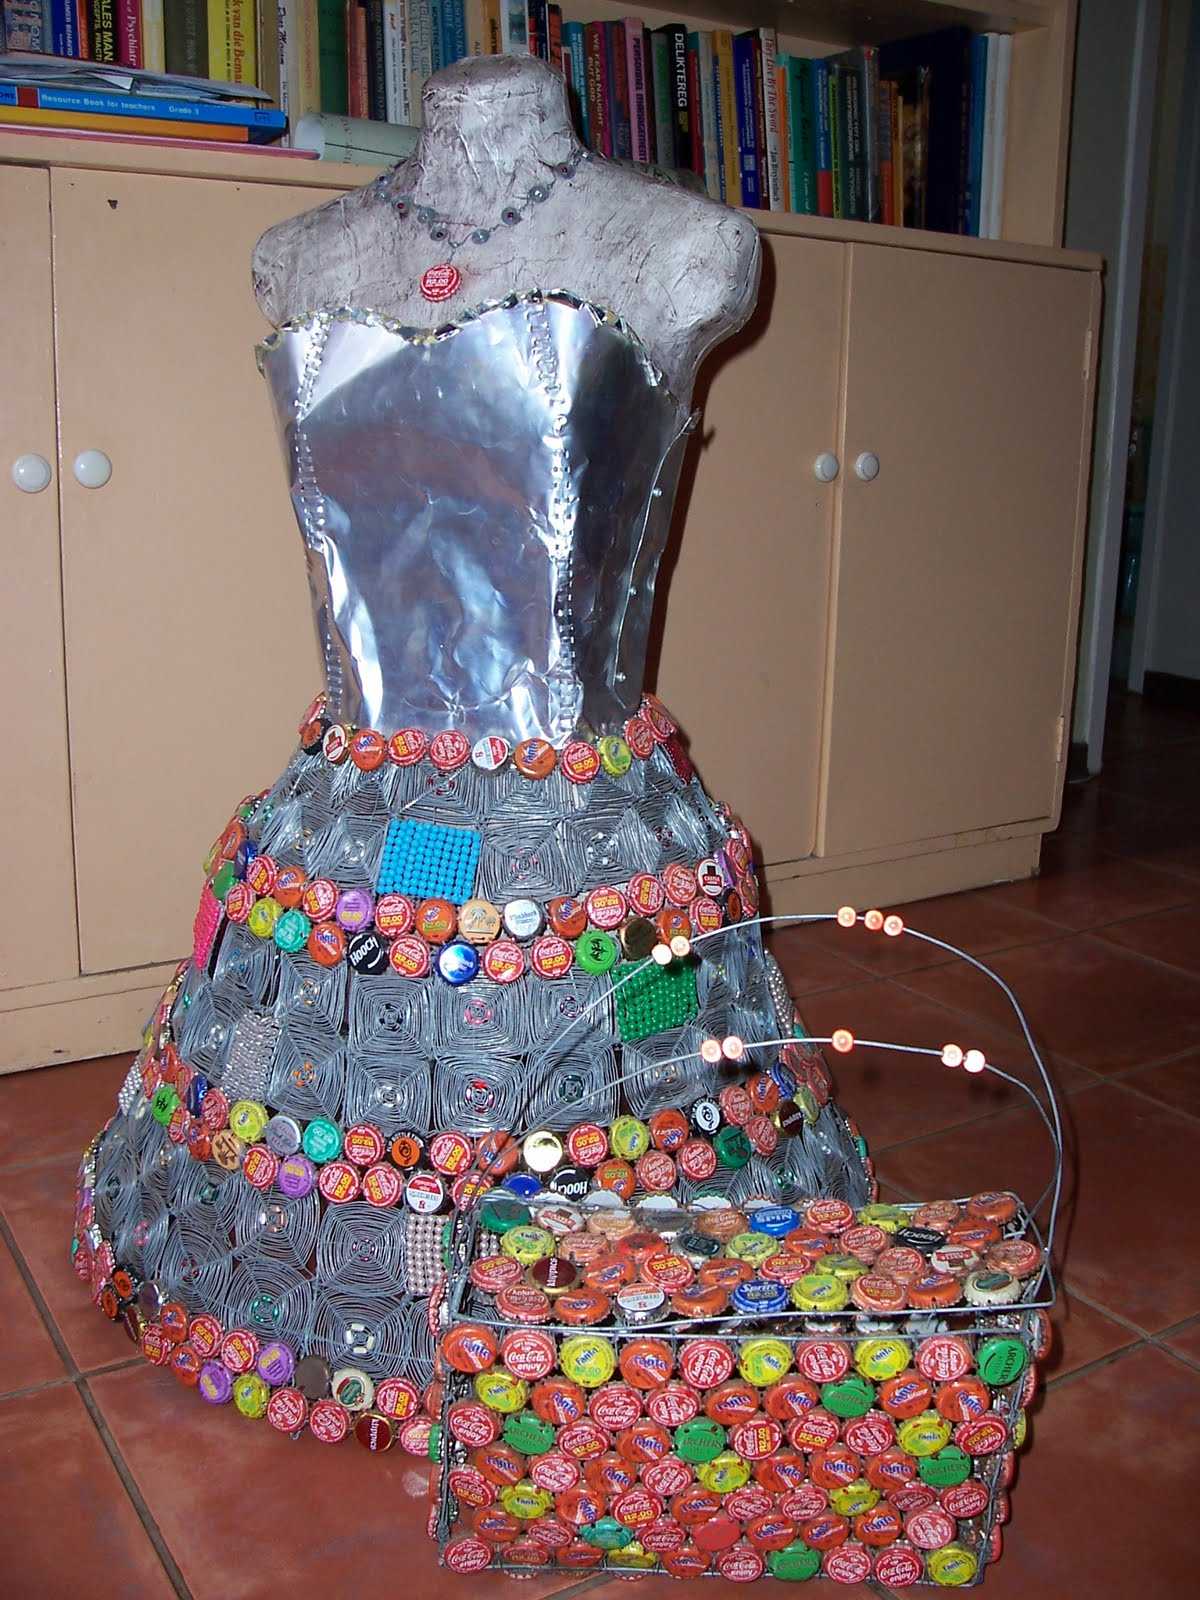 Ophelia's only dreaming: Recycled material dress